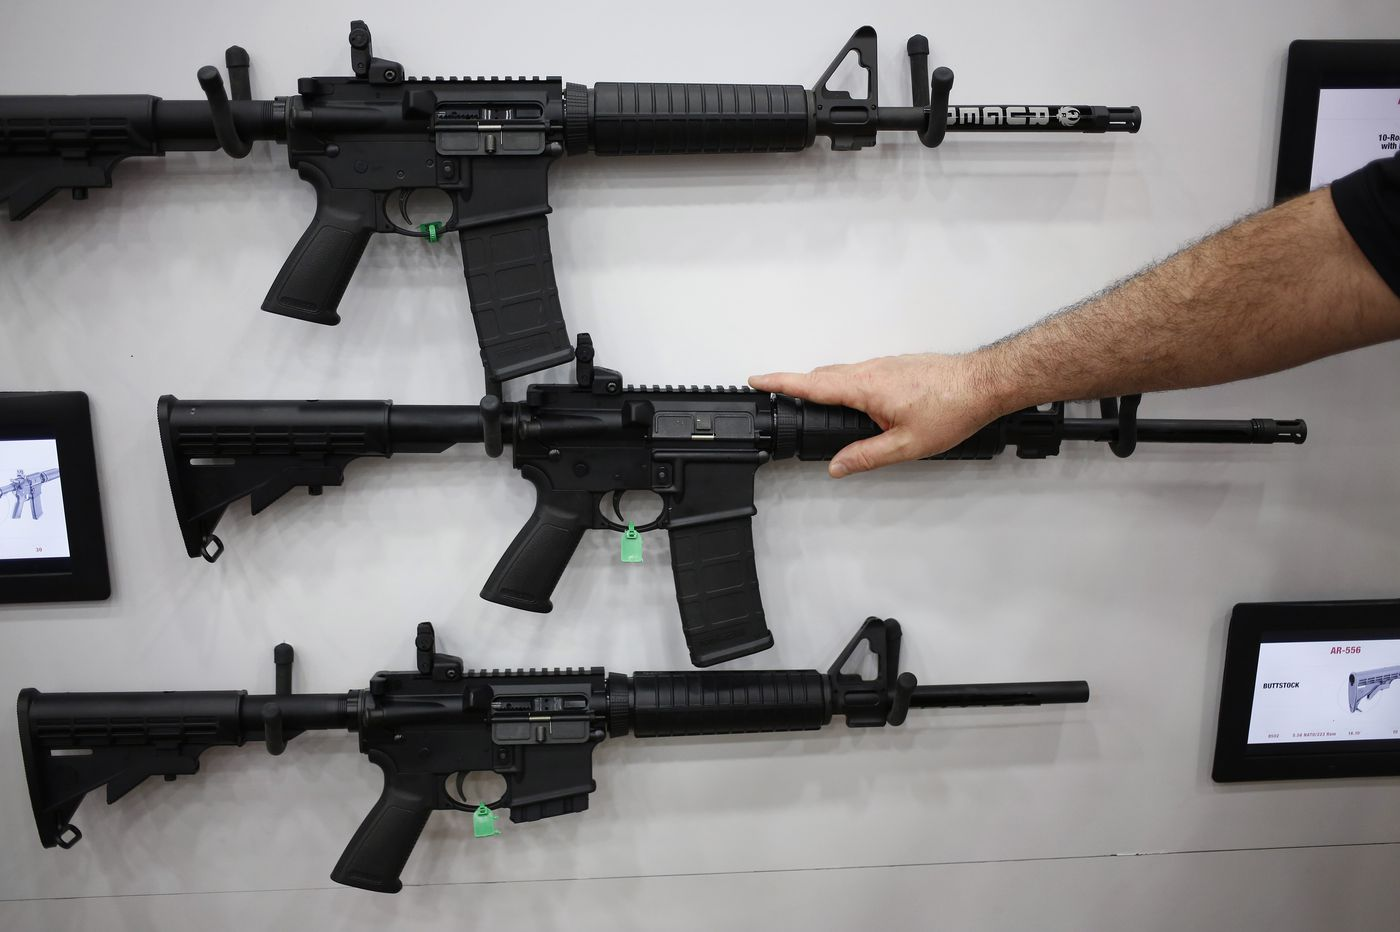 In their own words: What Pa. and N.J. candidates say about gun issues